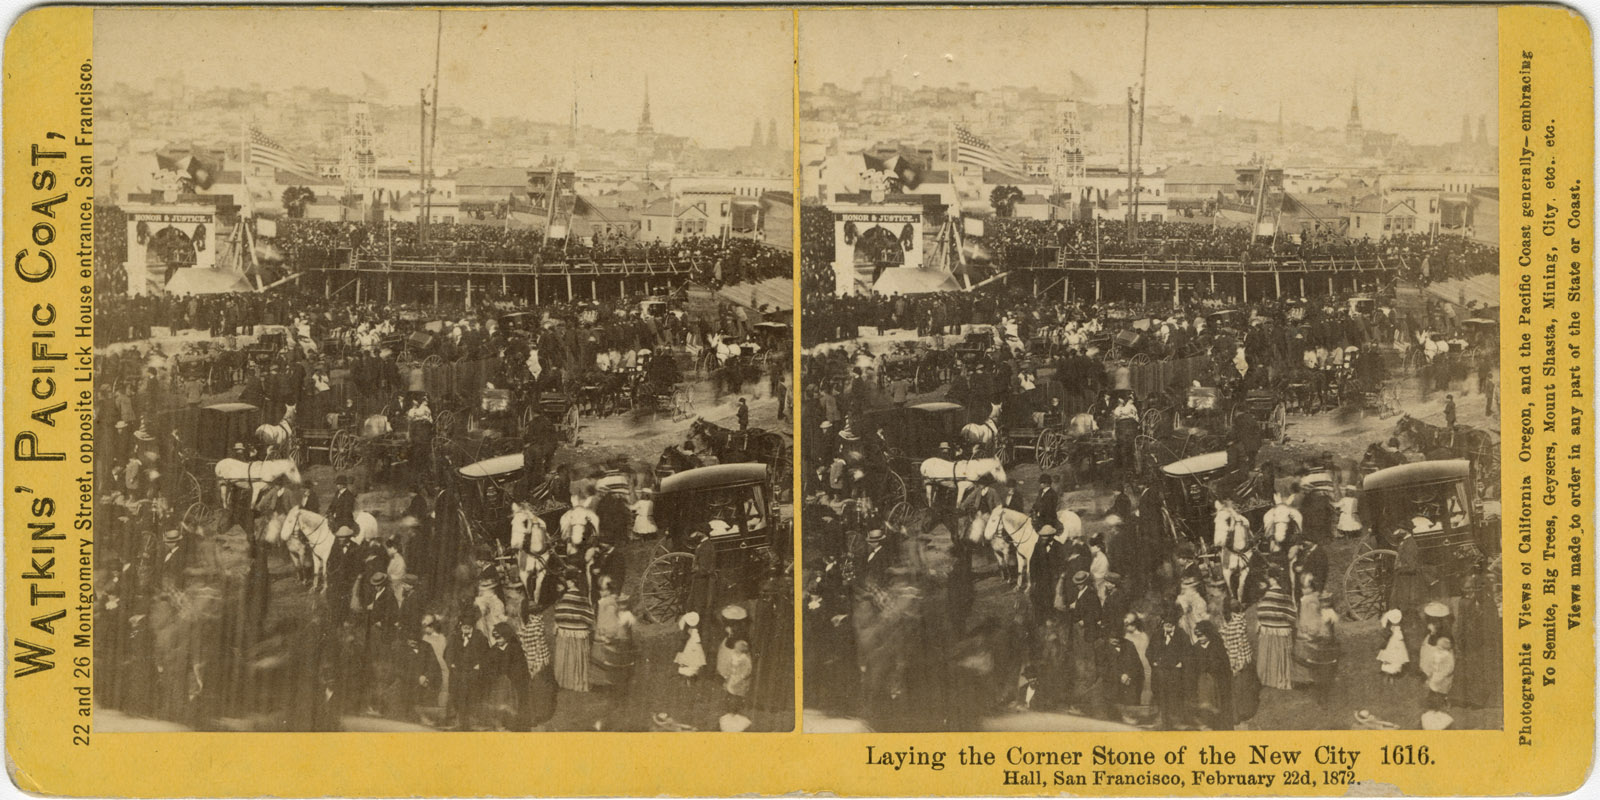 Watkins #1616 - Laying the Corner Stone of the New City Hall, San Francisco, February 22d, 1872